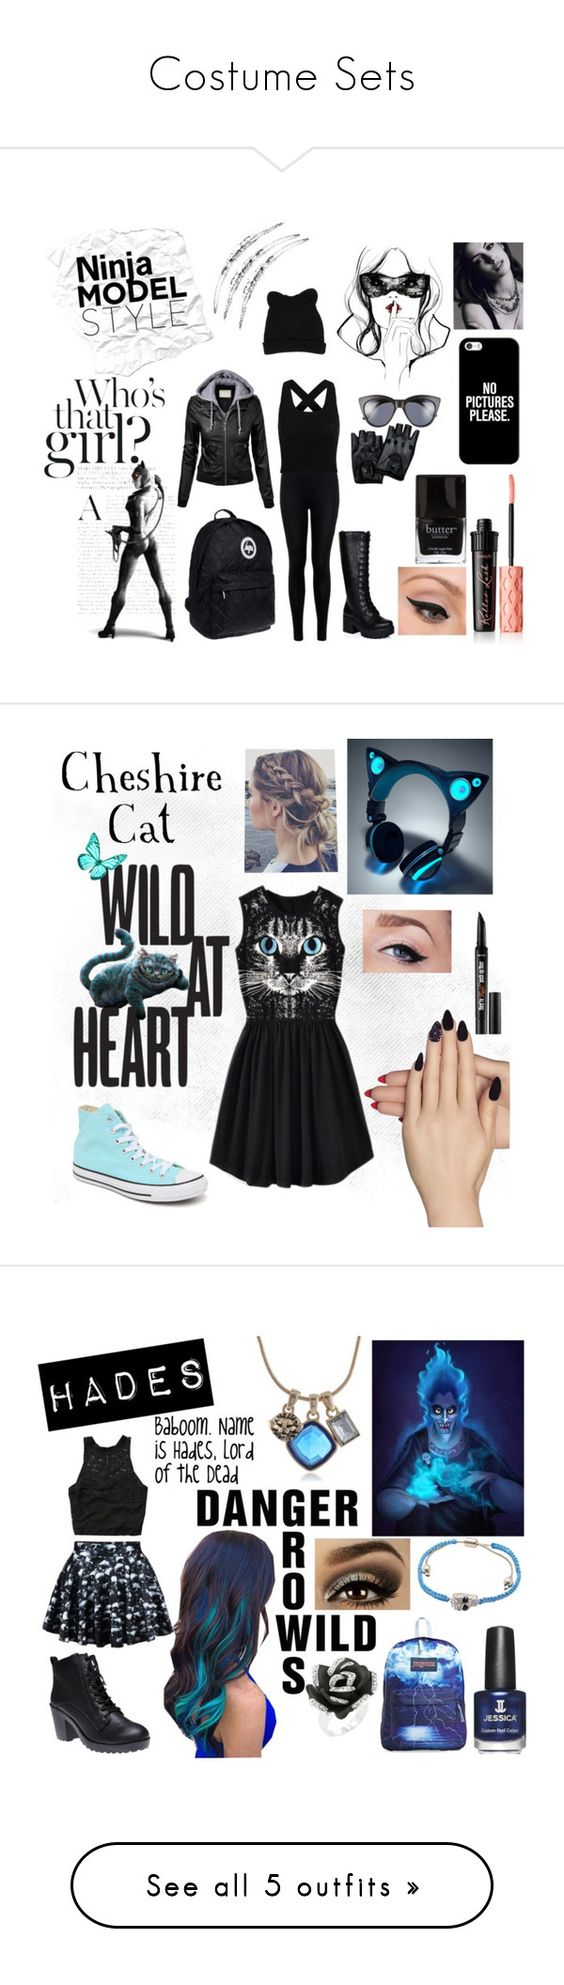 """""""Costume Sets"""" by jessie-makes-outfits ❤ liked on Polyvore featuring Masquerade, Miss Selfridge, A.J. Morgan, Casetify, Benefit, LORAC, Butter London, George J. Love, Static Nails and Converse"""